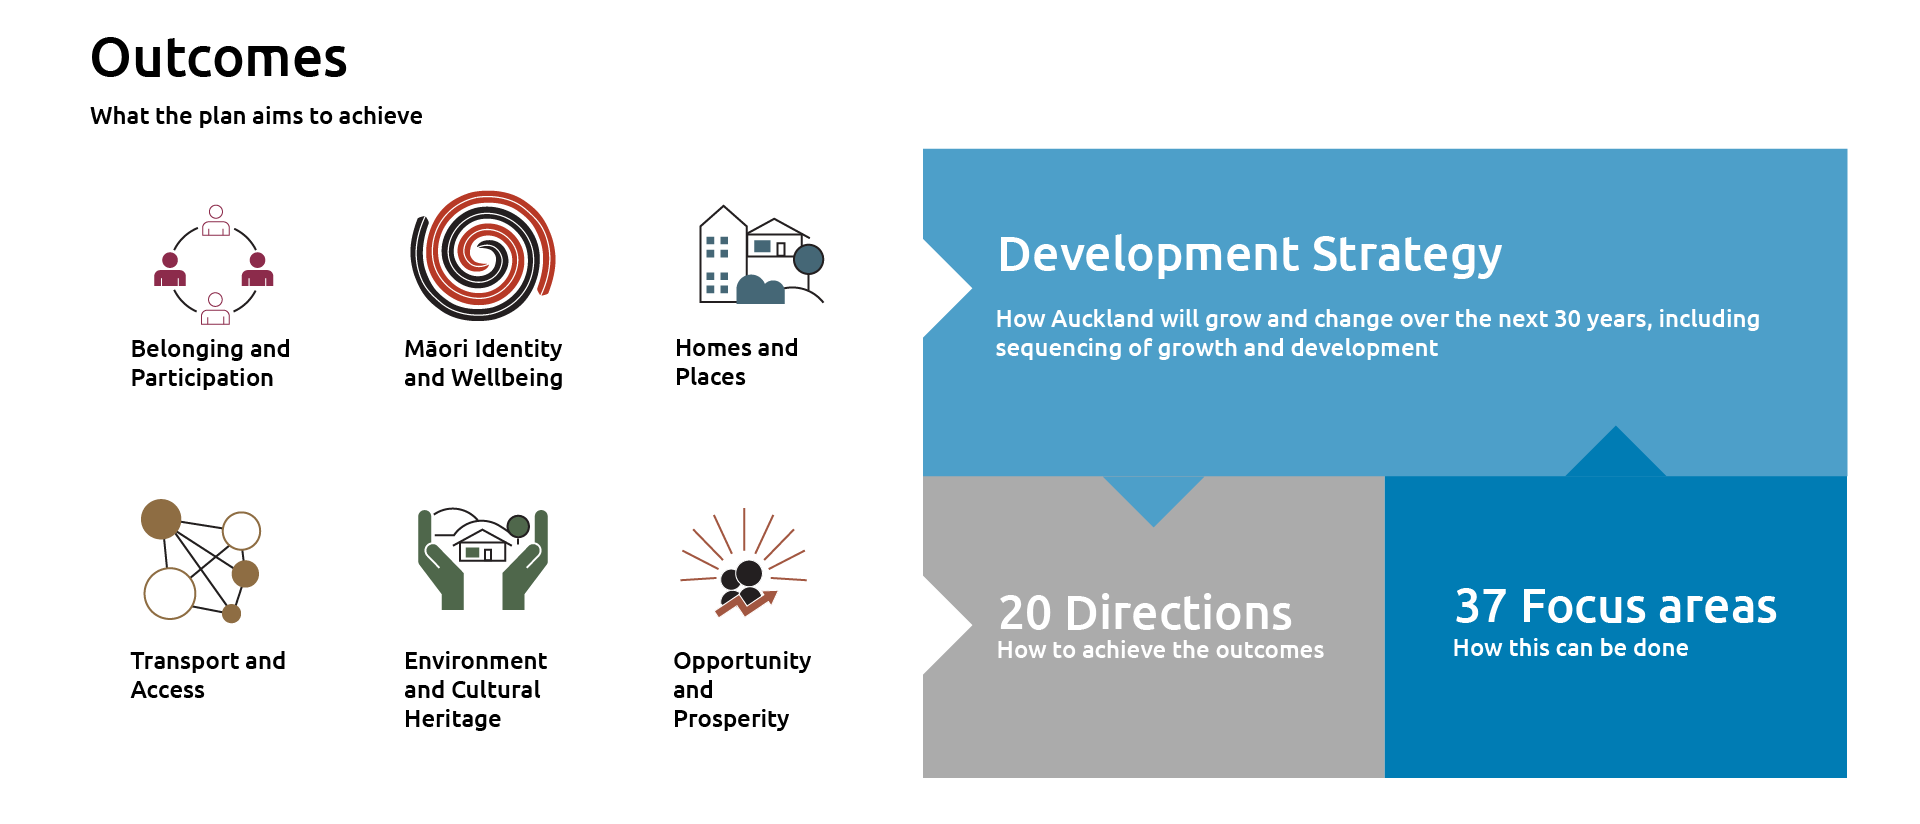 Diagram of the Auckland Plan 2050 framework showing the link between the outcomes, directions, focus areas and development strategy